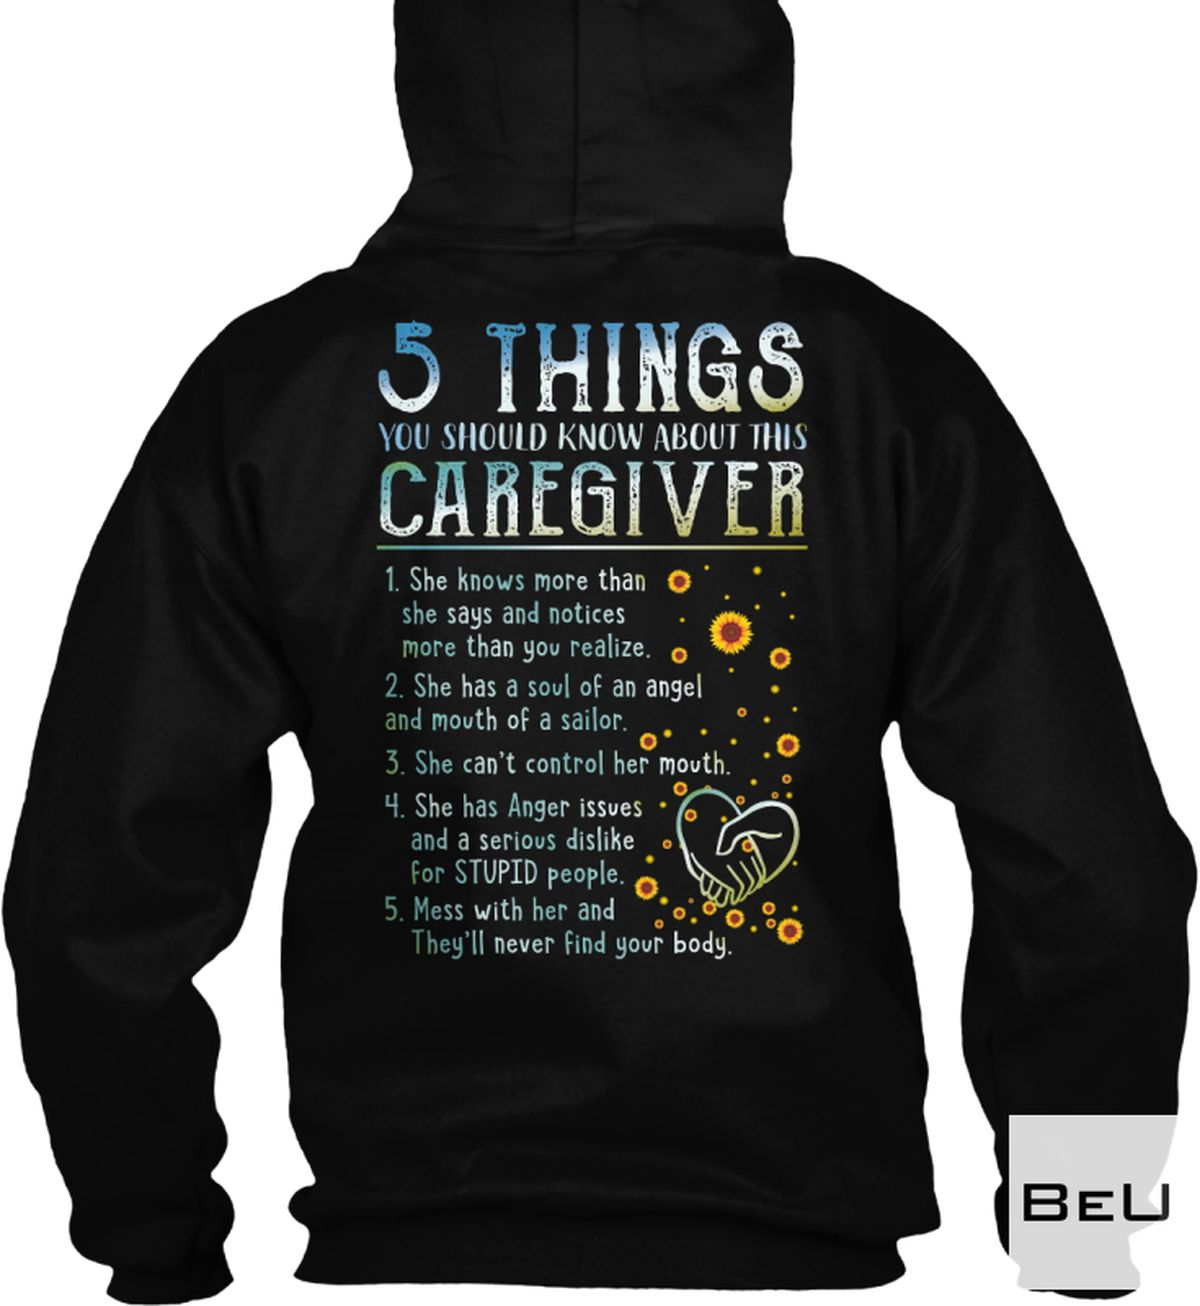 Luxury 5 Things You Should Know About This Caregiver Shirt